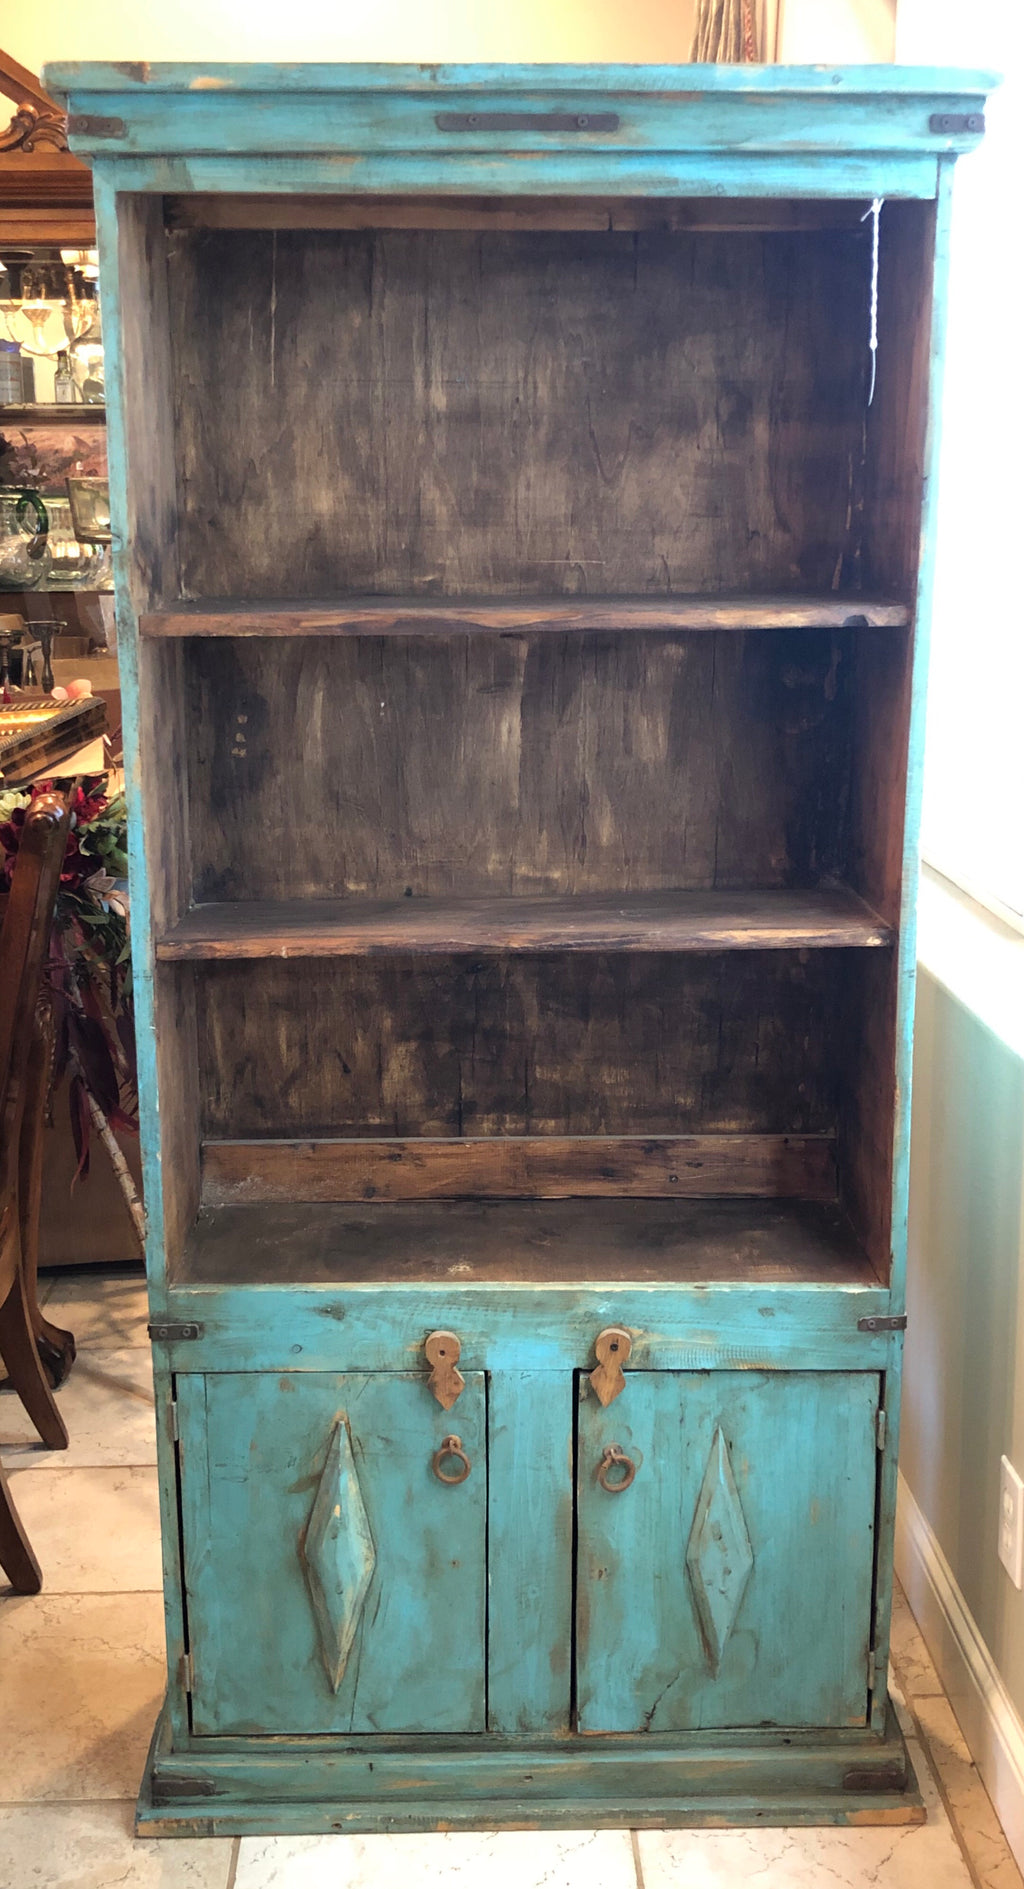 Turquoise and brown three shelf bookshelf with cabinet